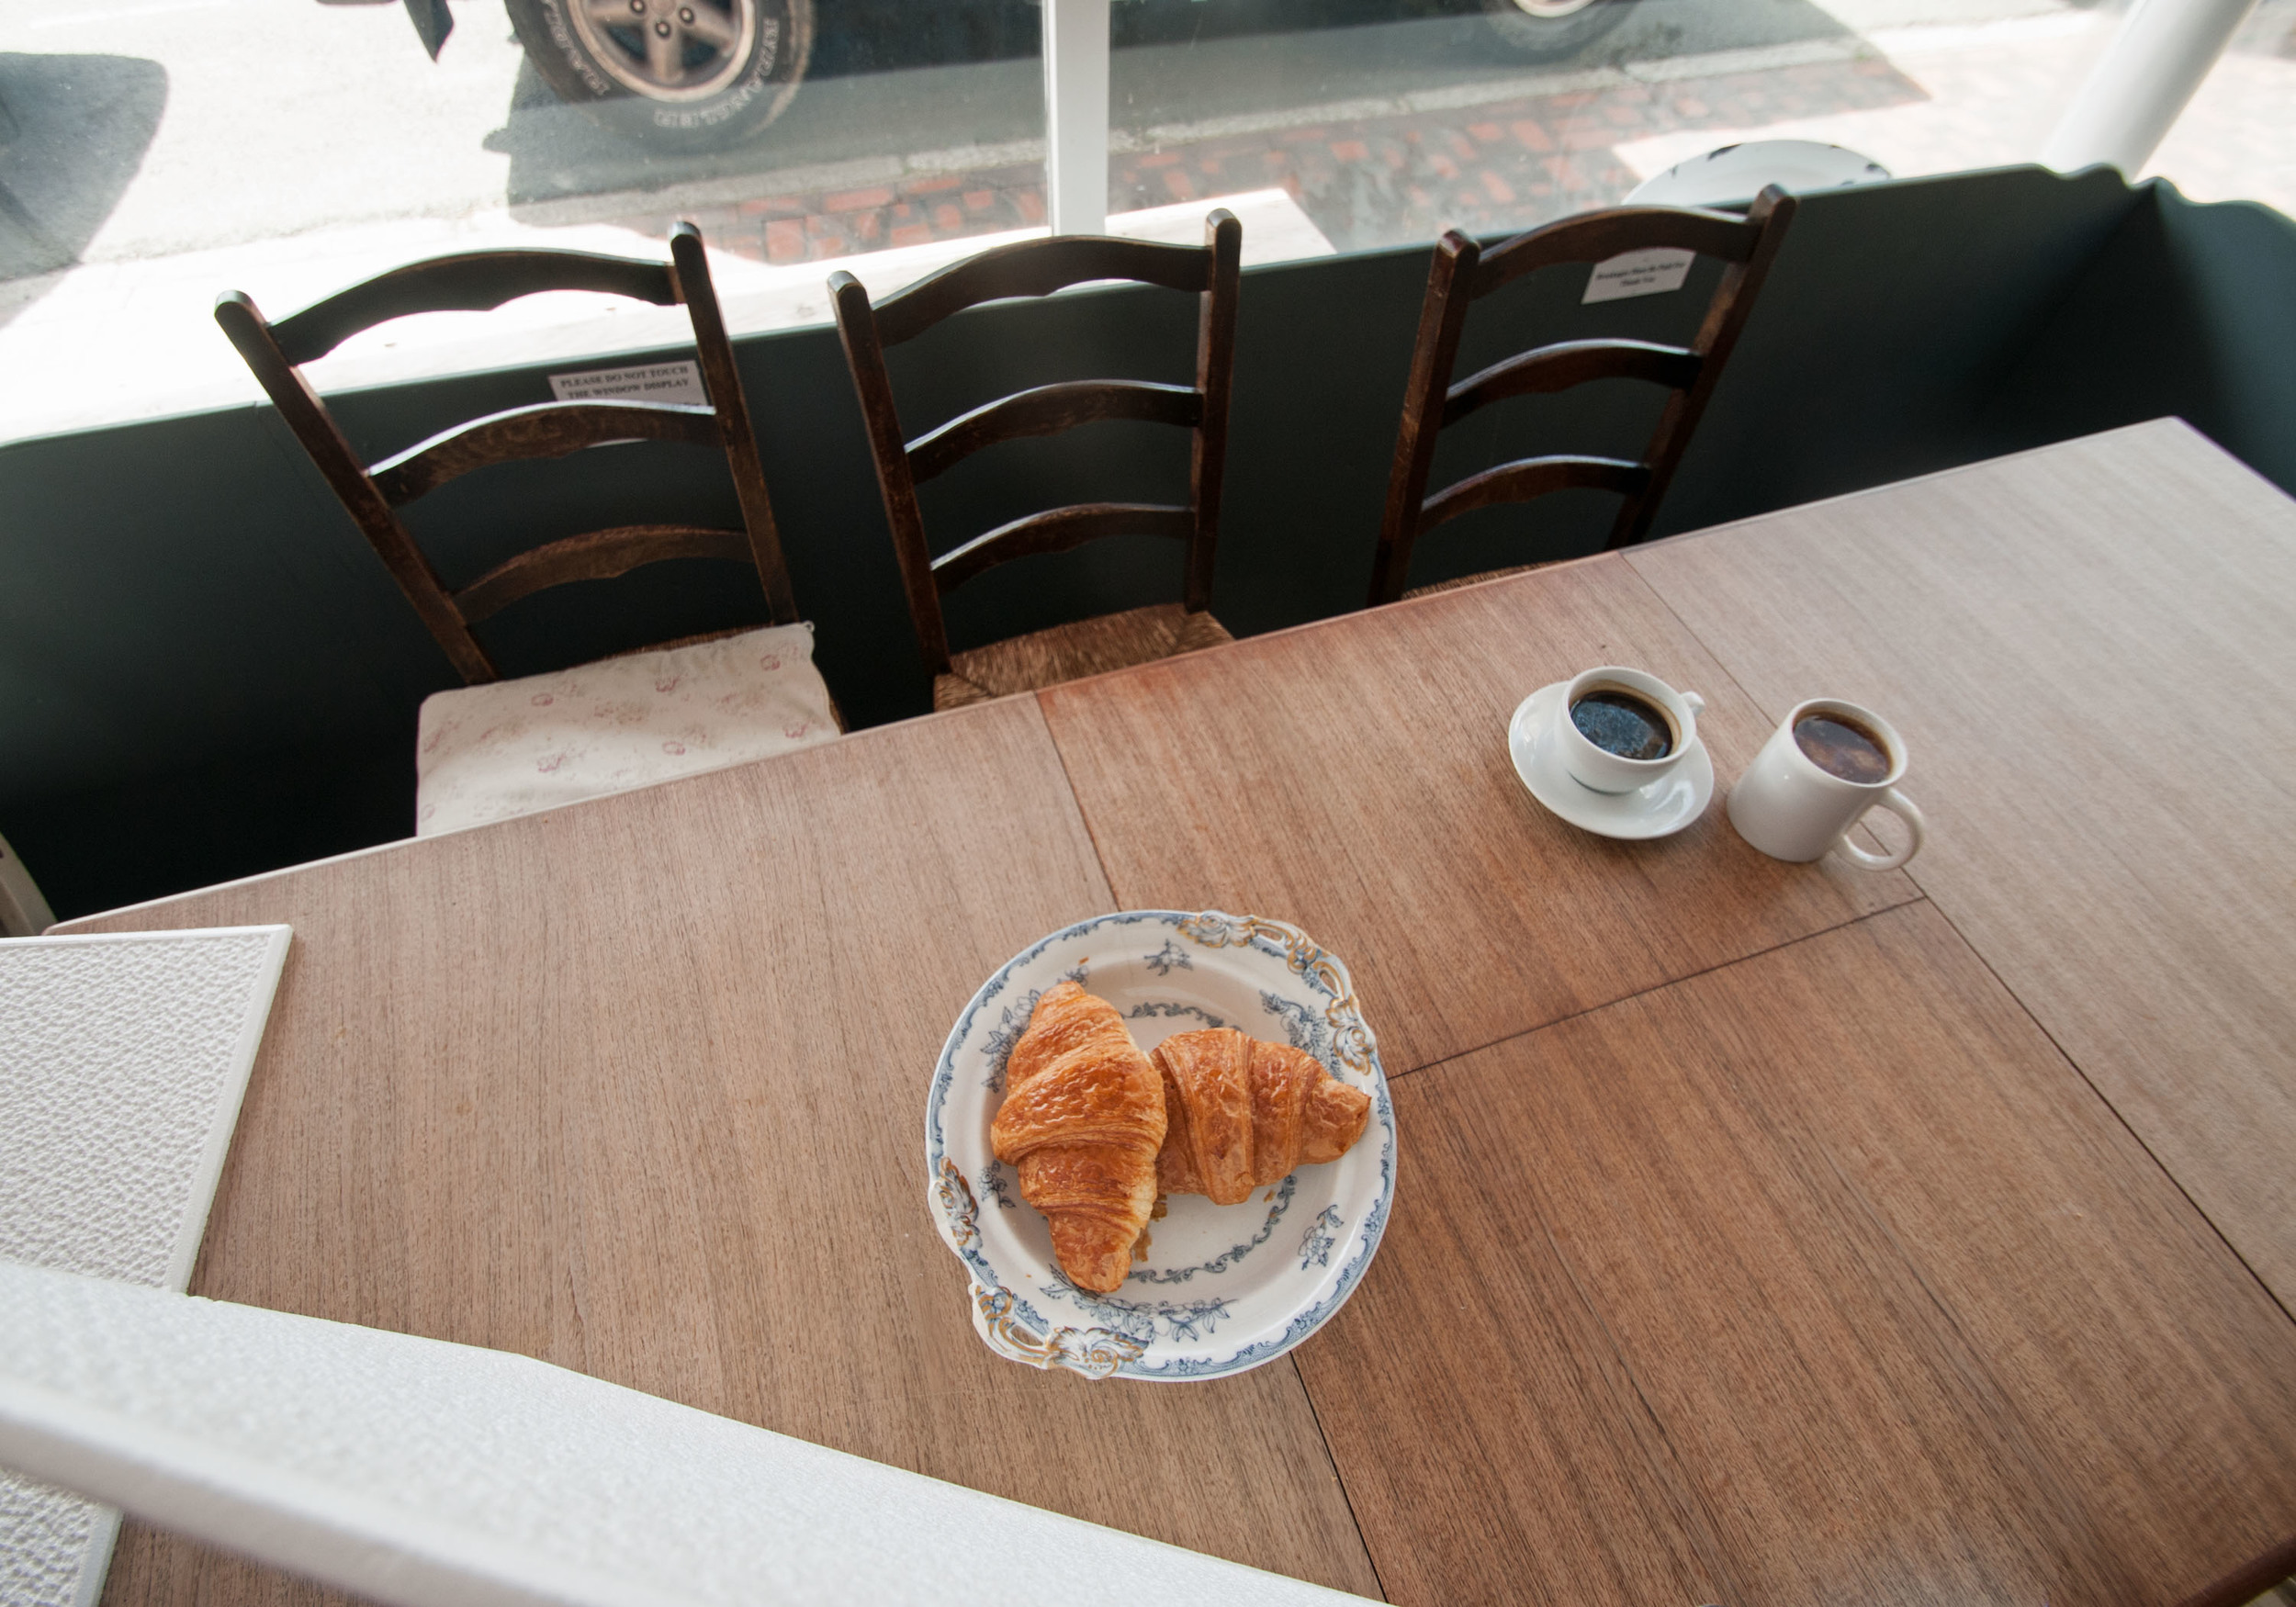 Photographing croissants at Laportes - 100Designs